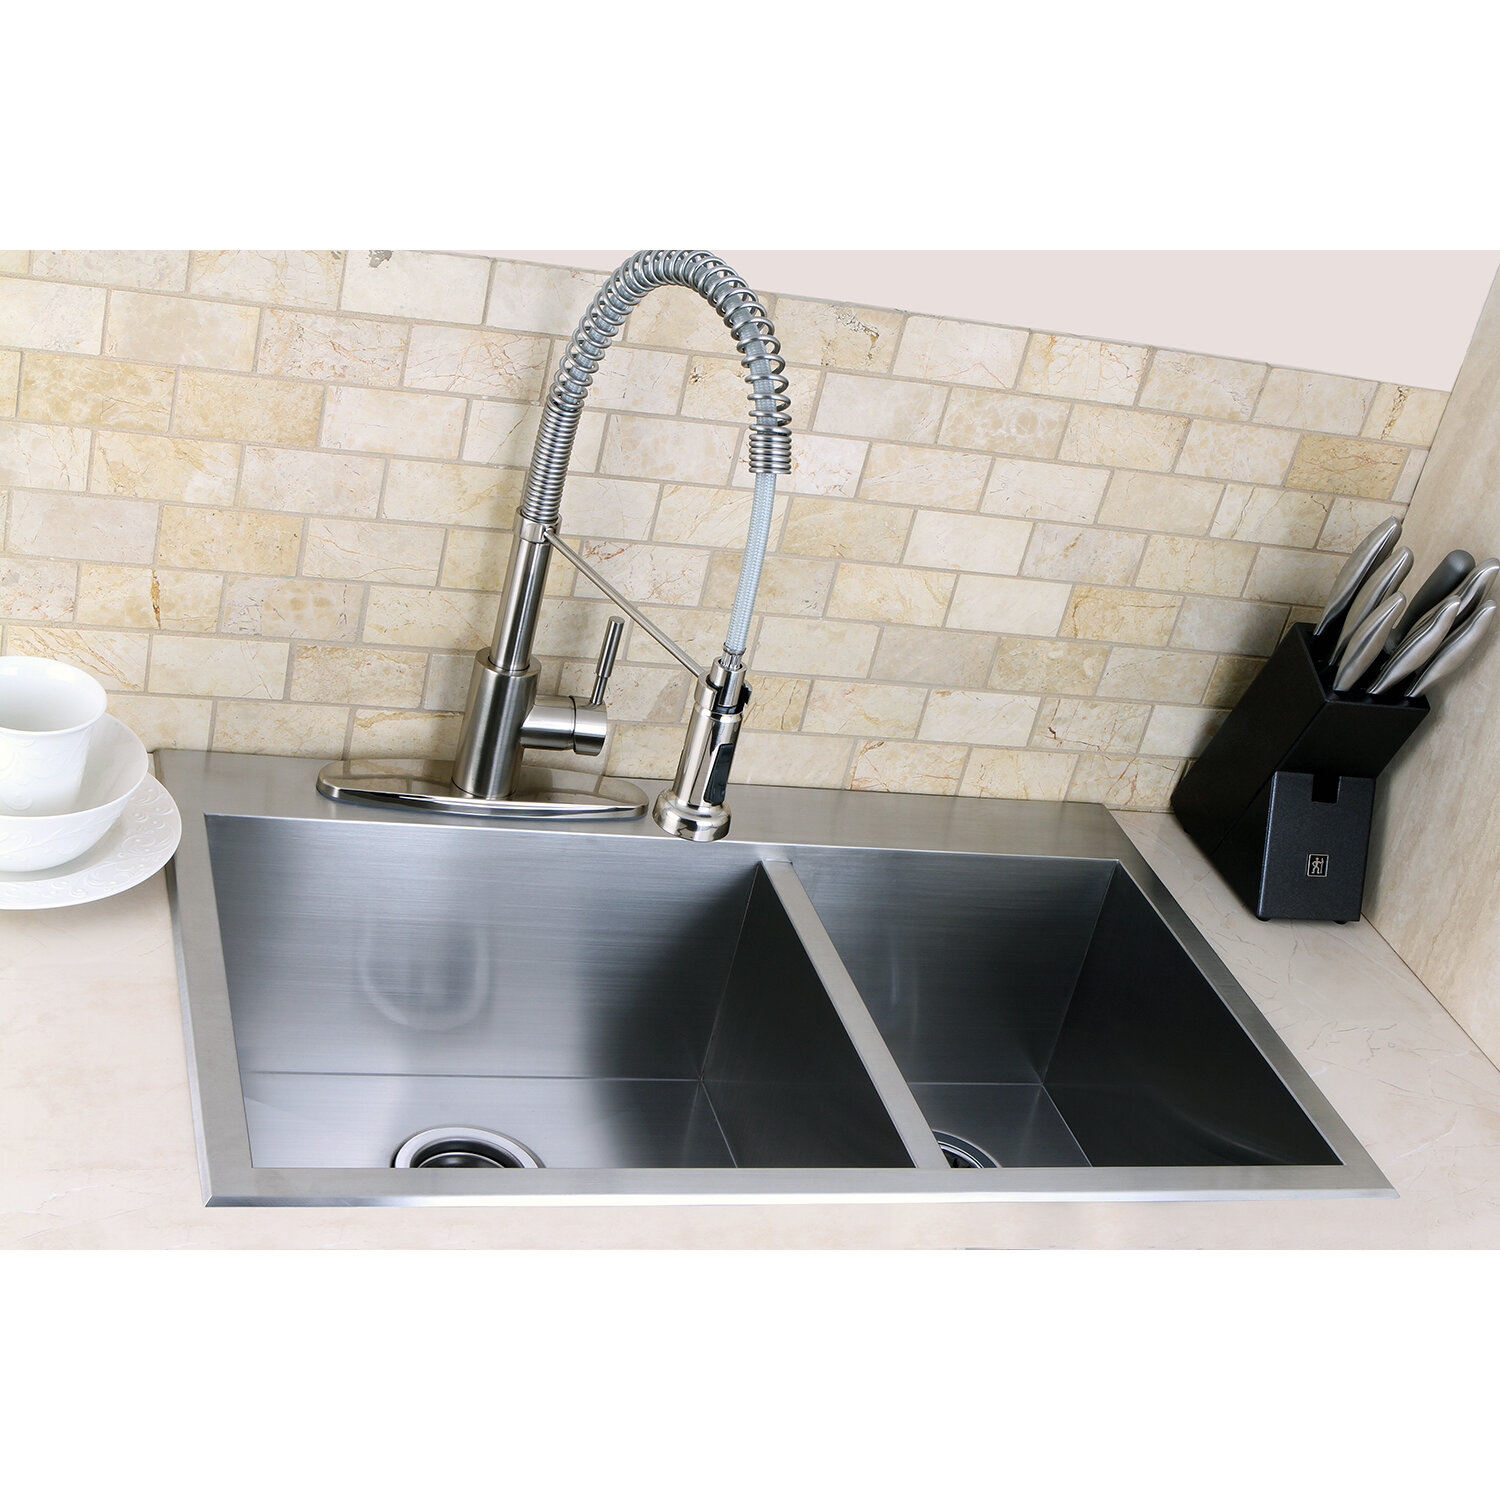 "Kitchen Sink Offset From Window: Kingston Brass Uptowne 31.5"" X 20.5"" Self-Rimming 70/30"